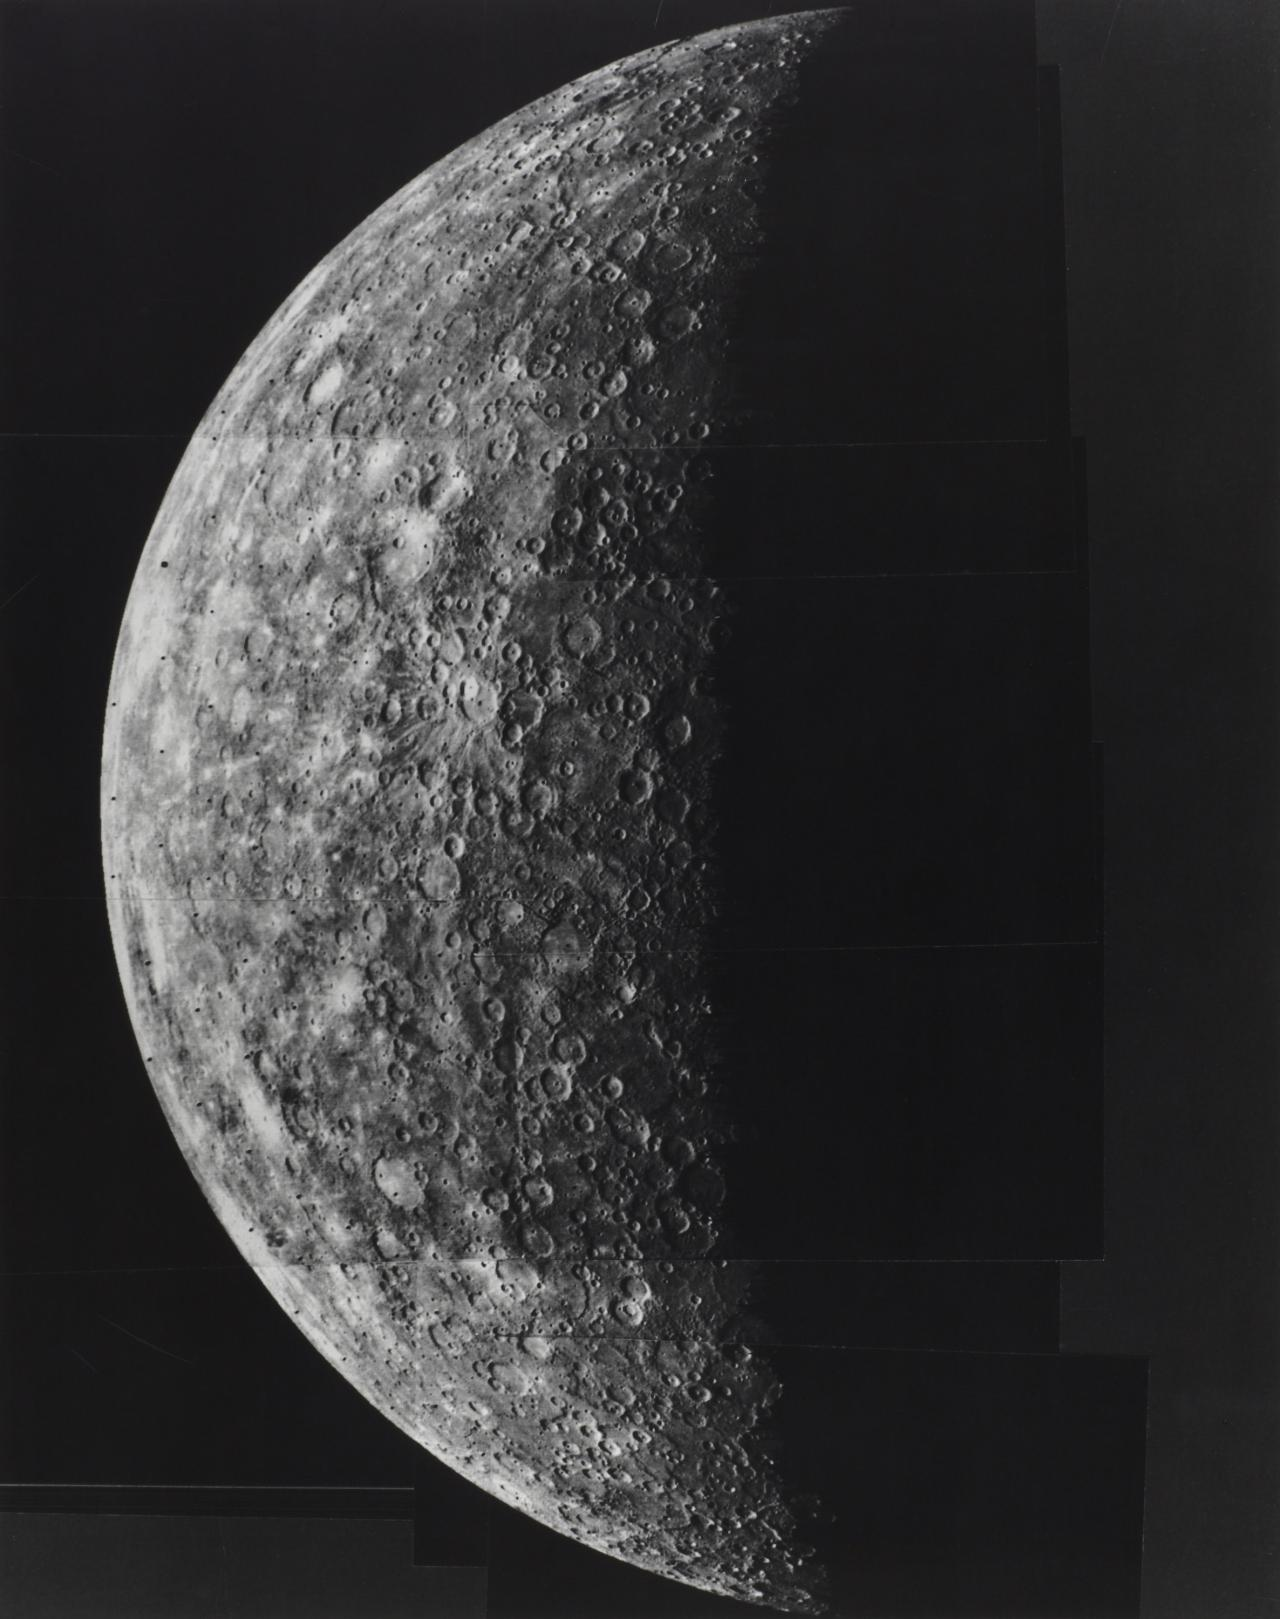 Photomosaic of Mercury made 29 March 1974